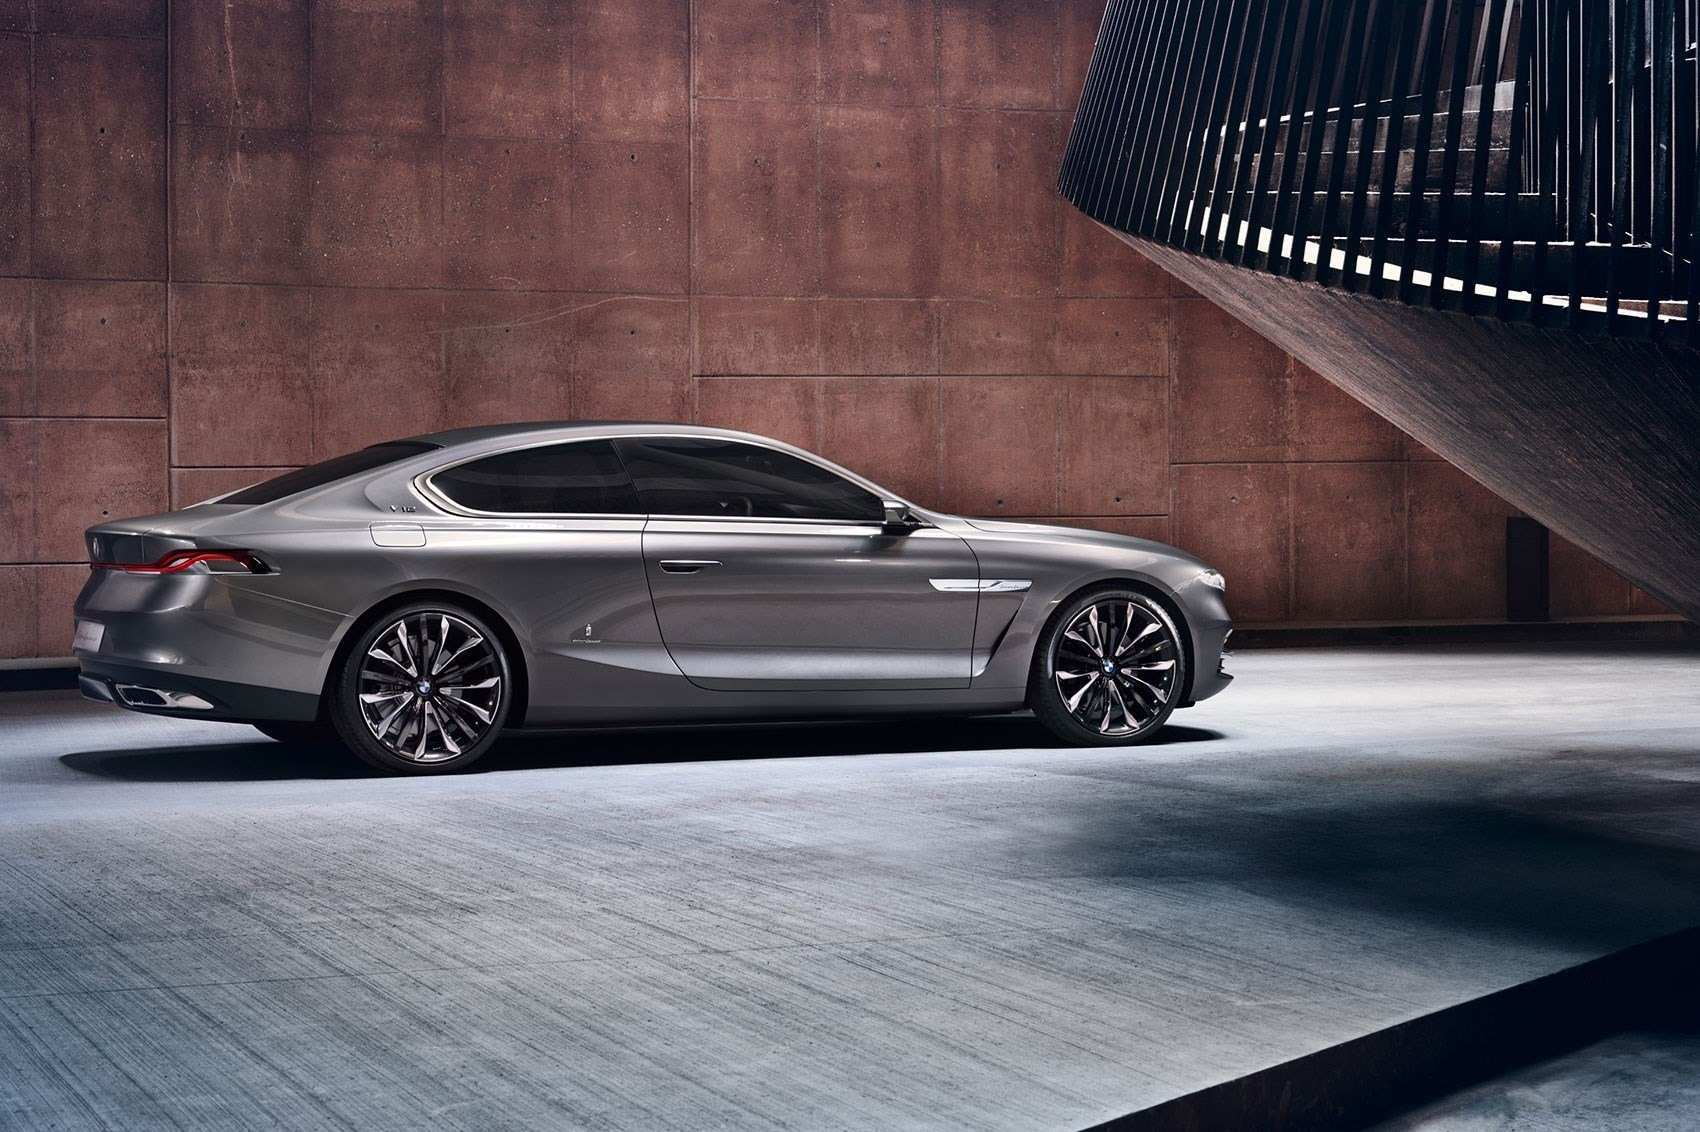 99 Great 2020 Jaguar Xj Spy Spy Shoot by 2020 Jaguar Xj Spy